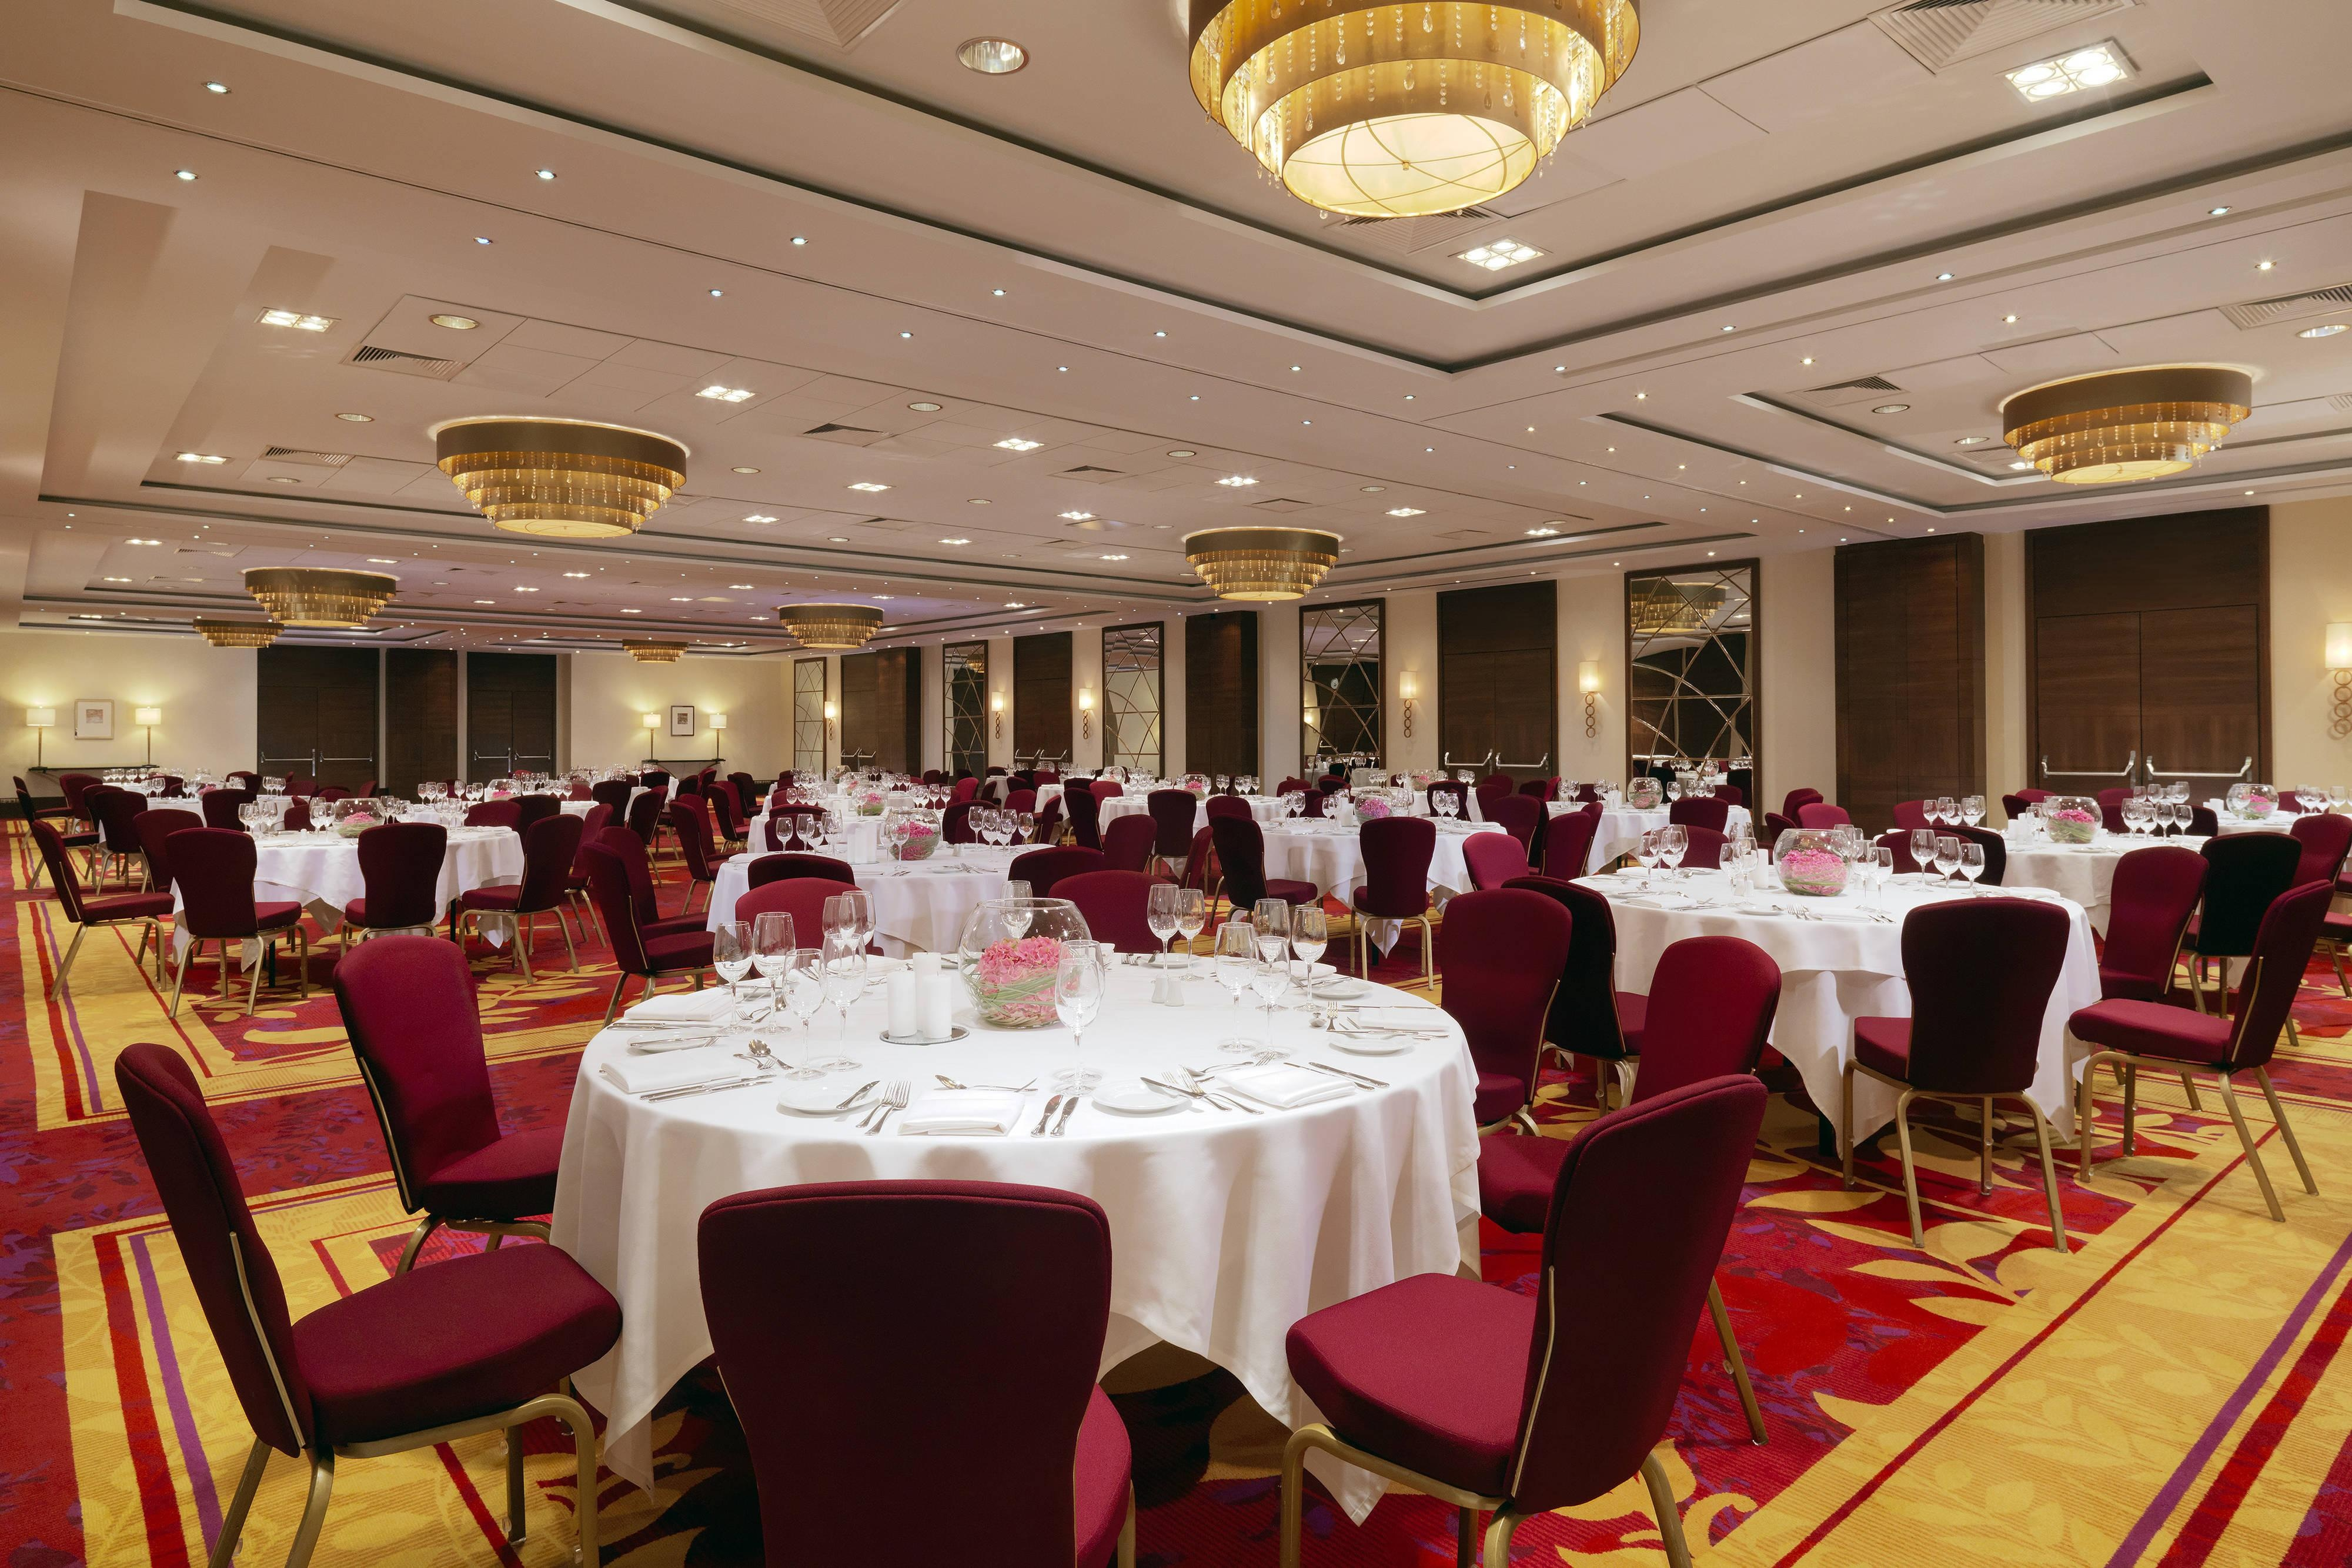 Warsaw hotel ballroom conference